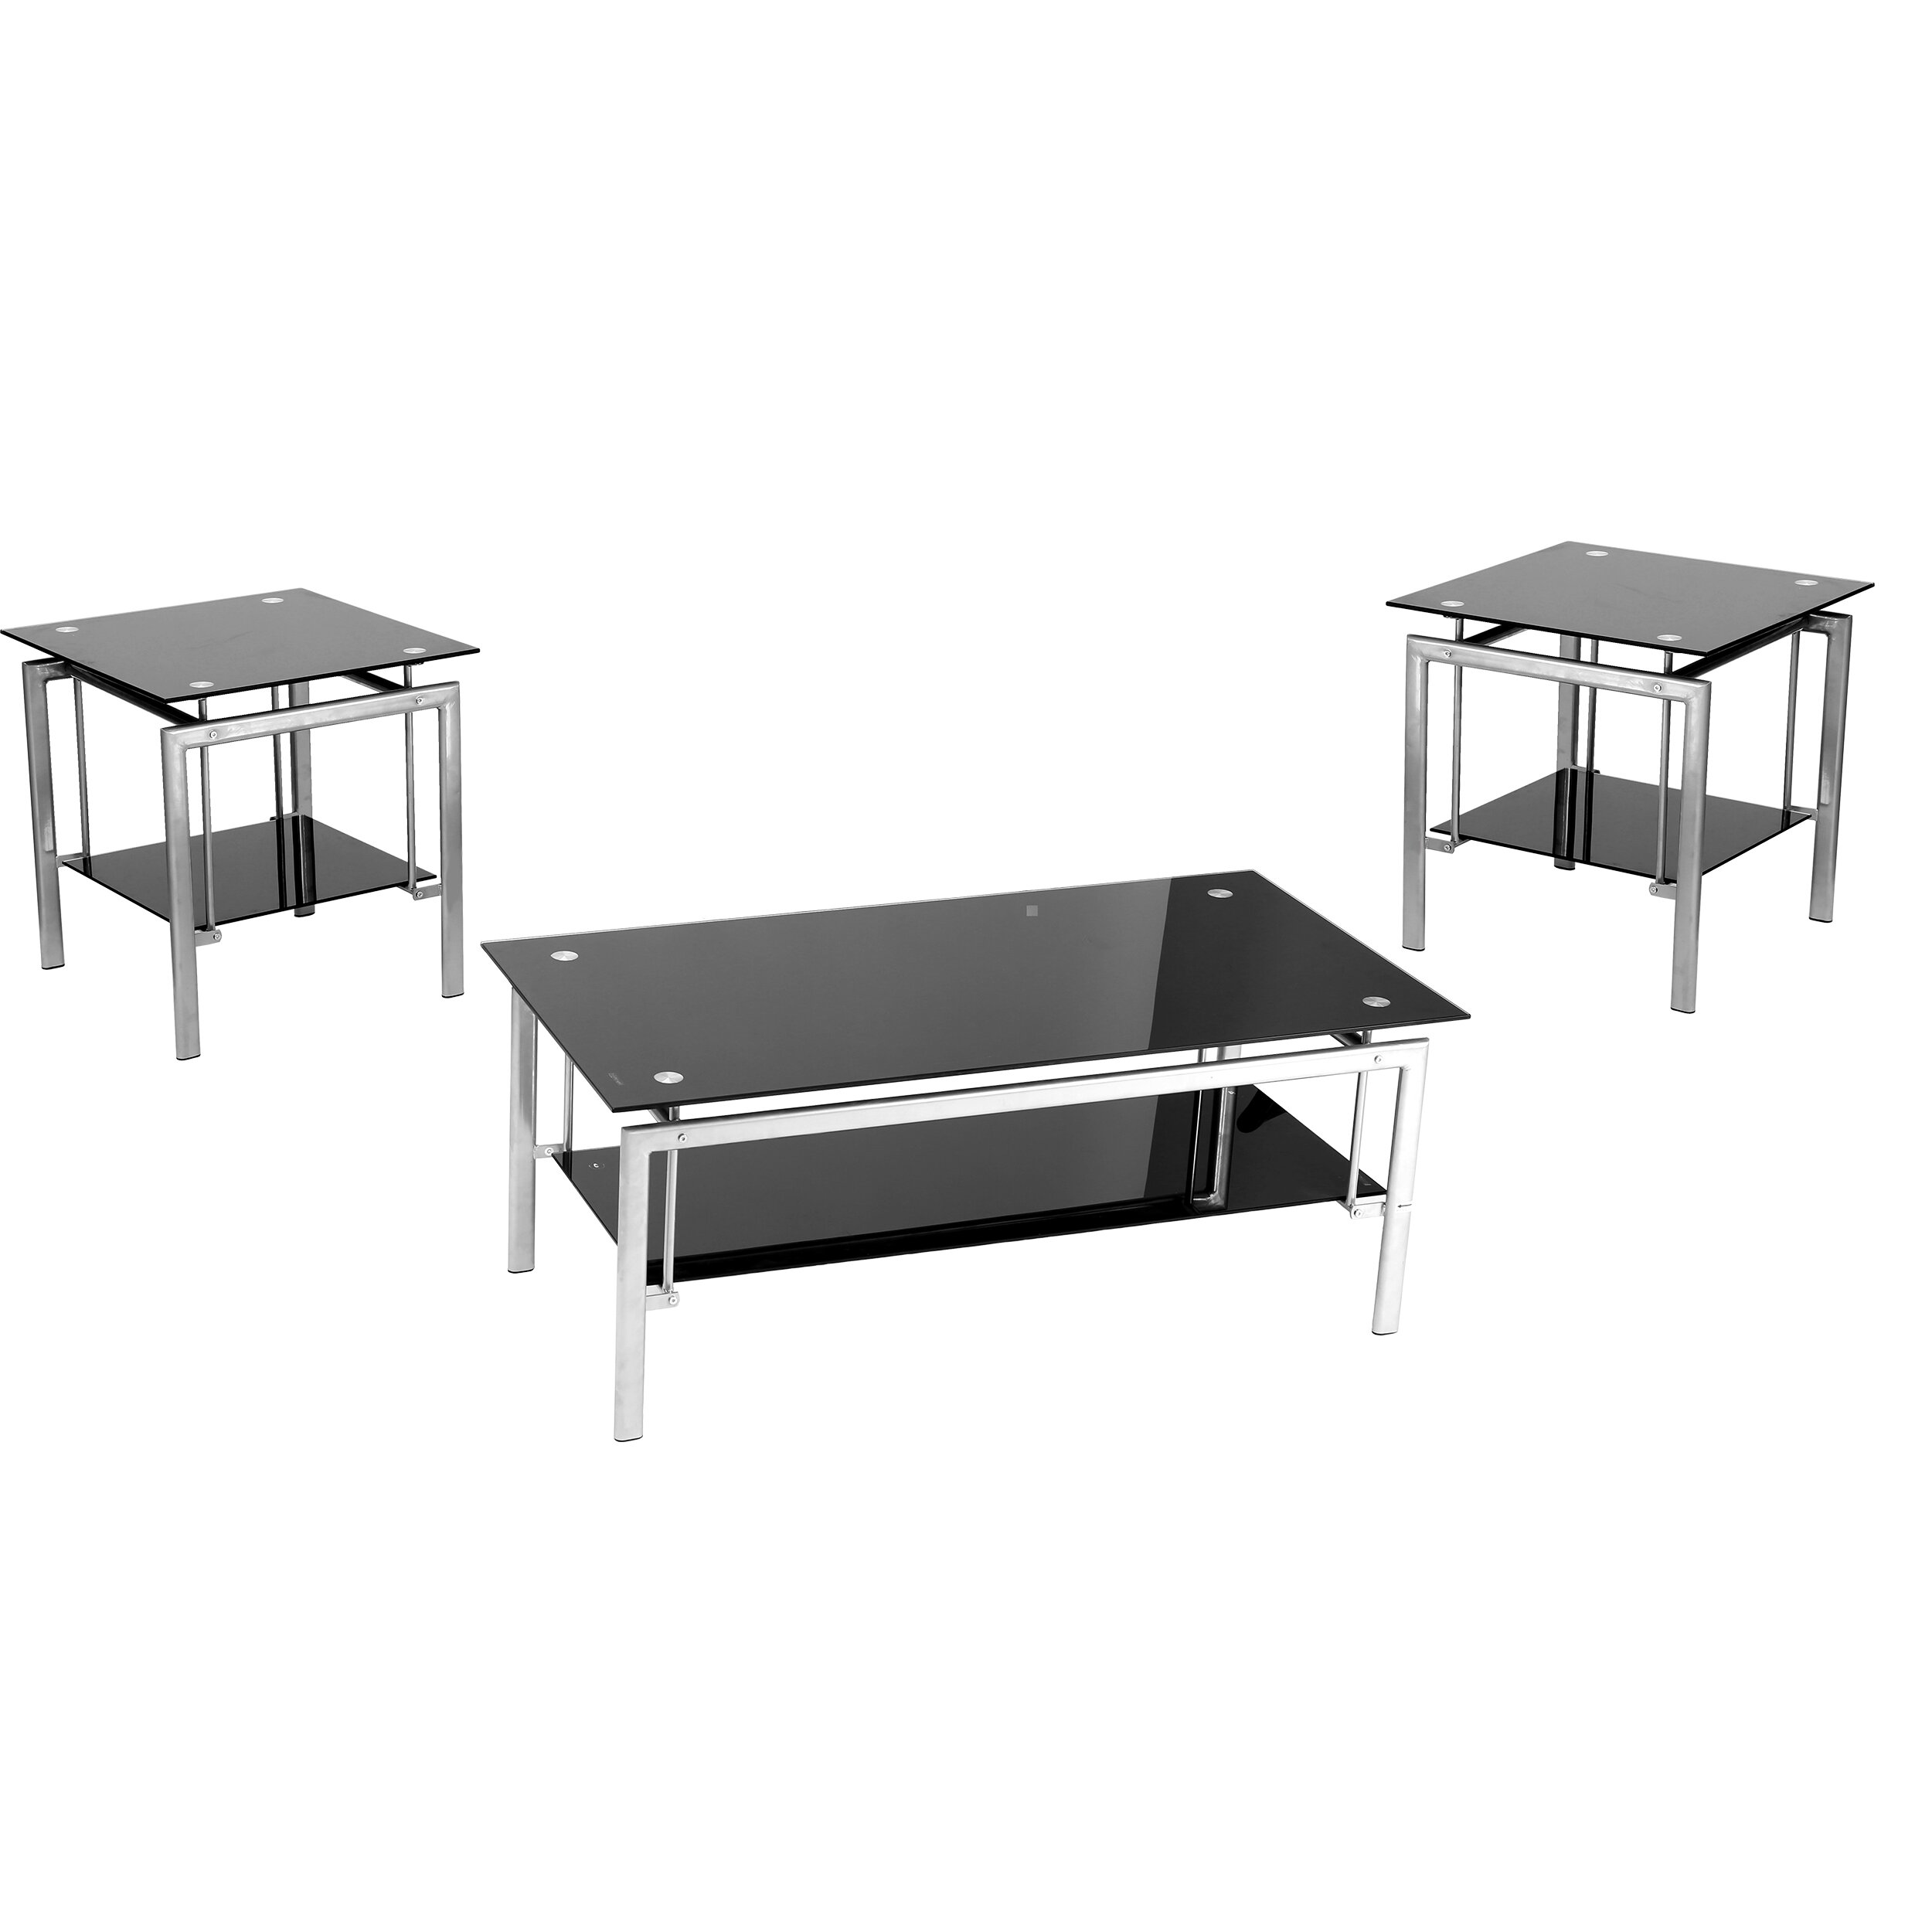 Black coffee table set - Innovex 3 Piece Coffee Table Set